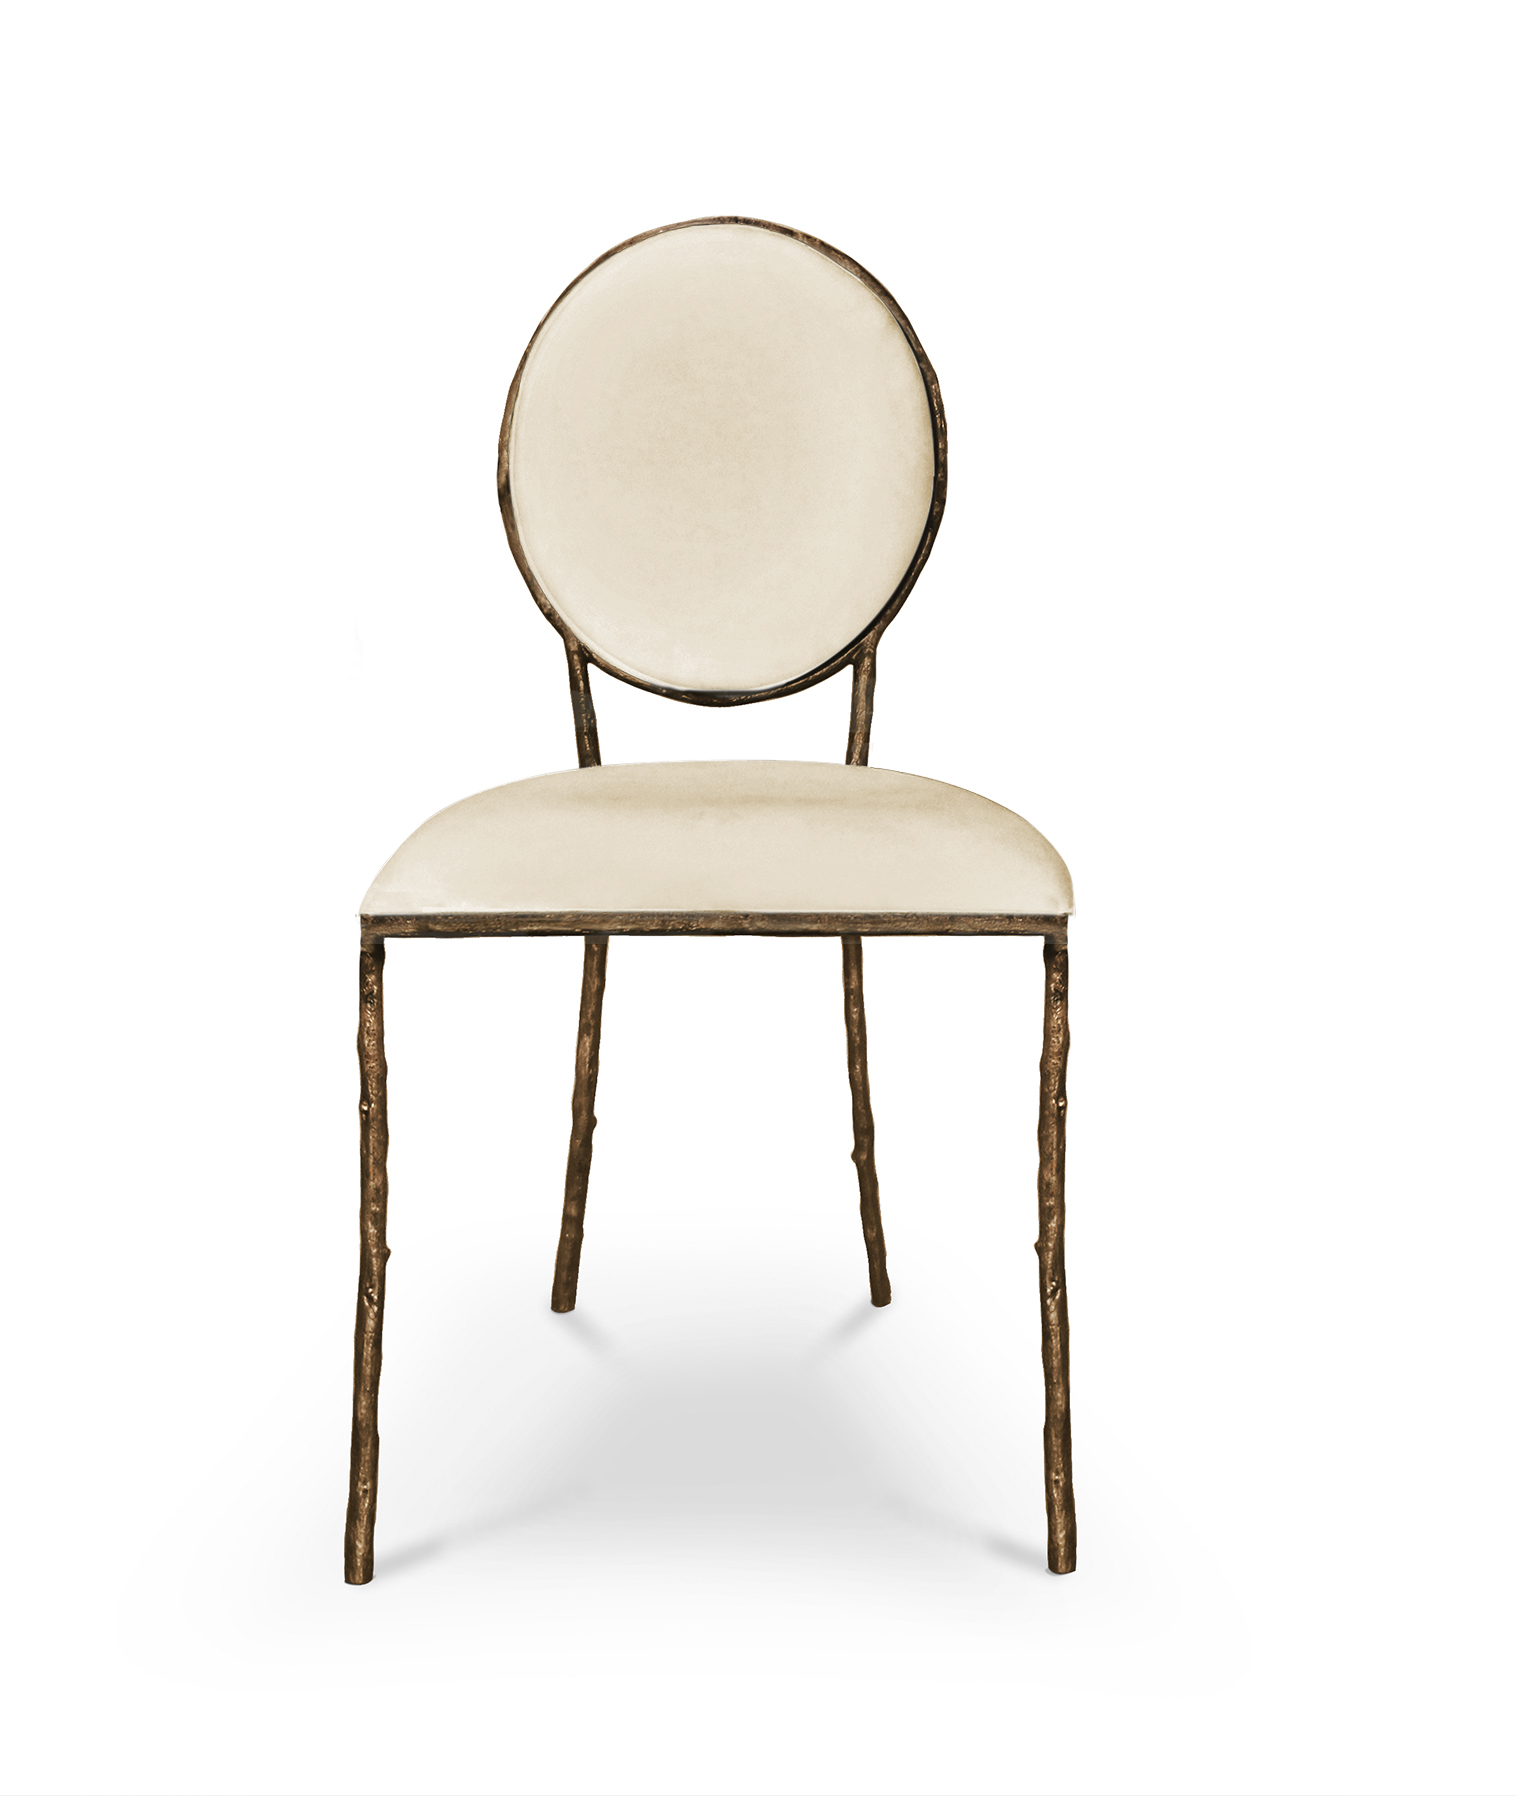 Great Selection of Dining Chairs to Stylish your Dining Room10 dining chairs Great Selection of Dining Chairs to Stylish your Dining Room Great Selection of Dining Chairs to Stylish your Dining Room10